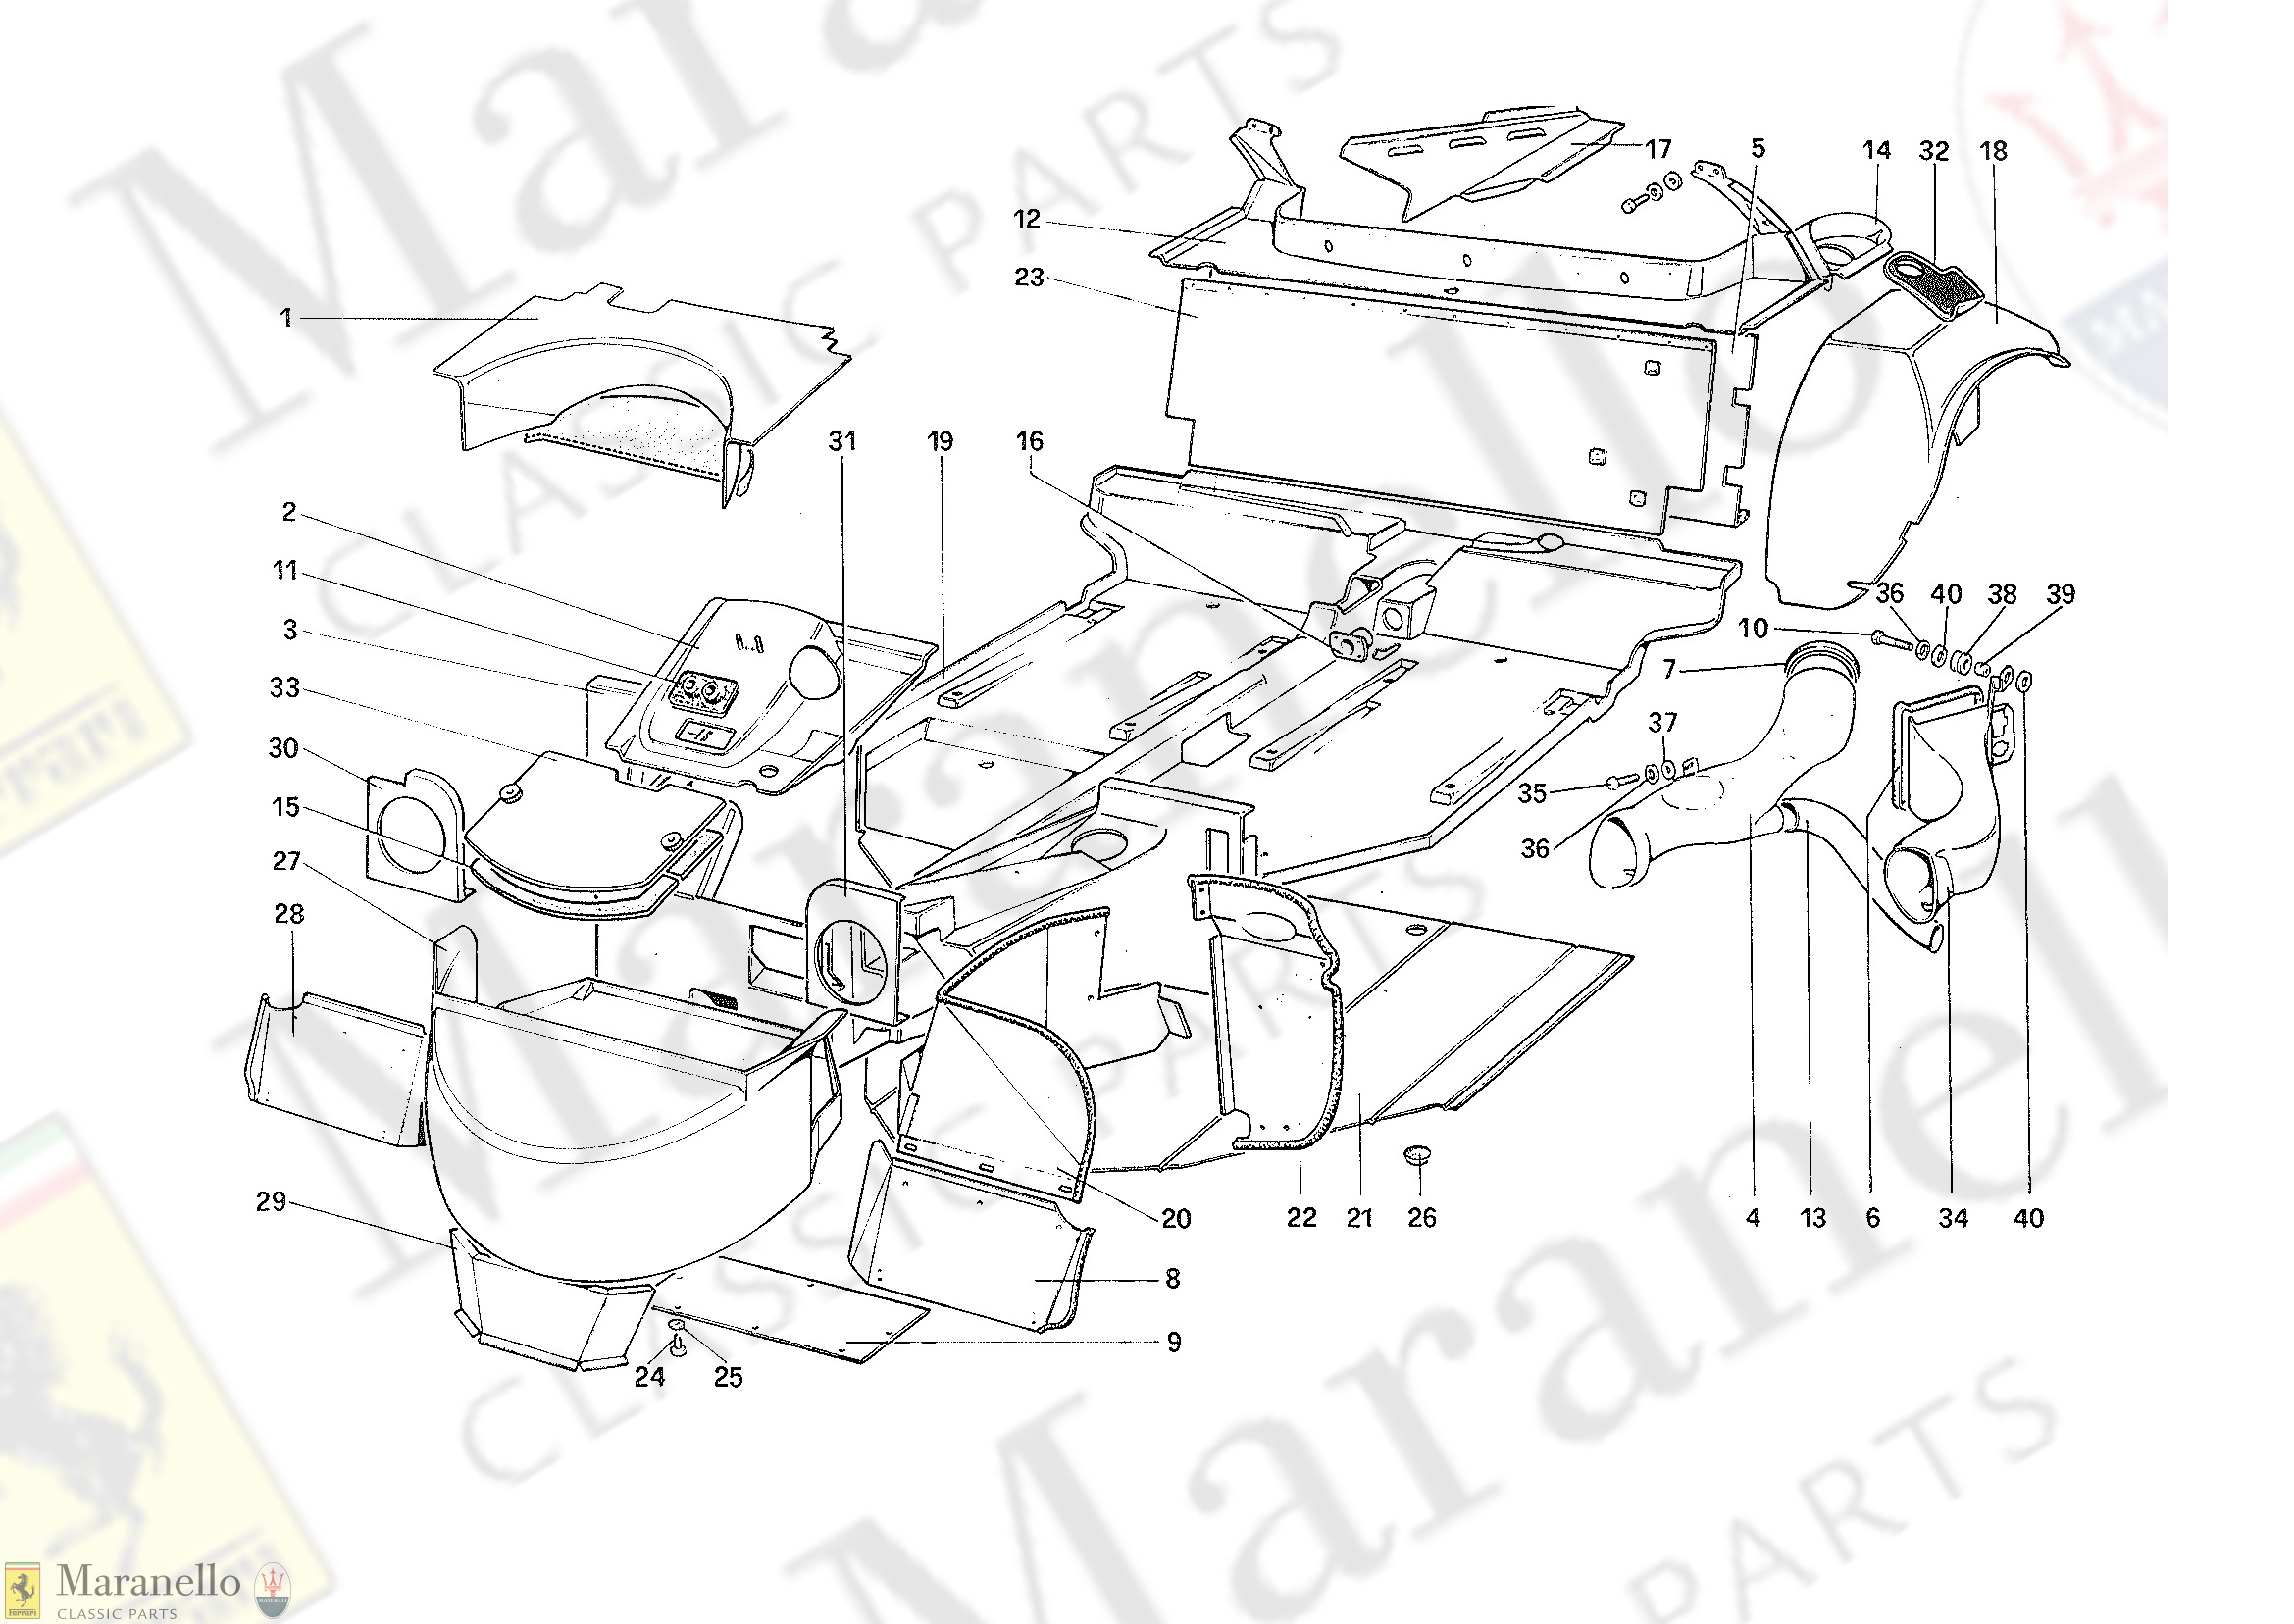 102 - Body Shell - Inner Elements